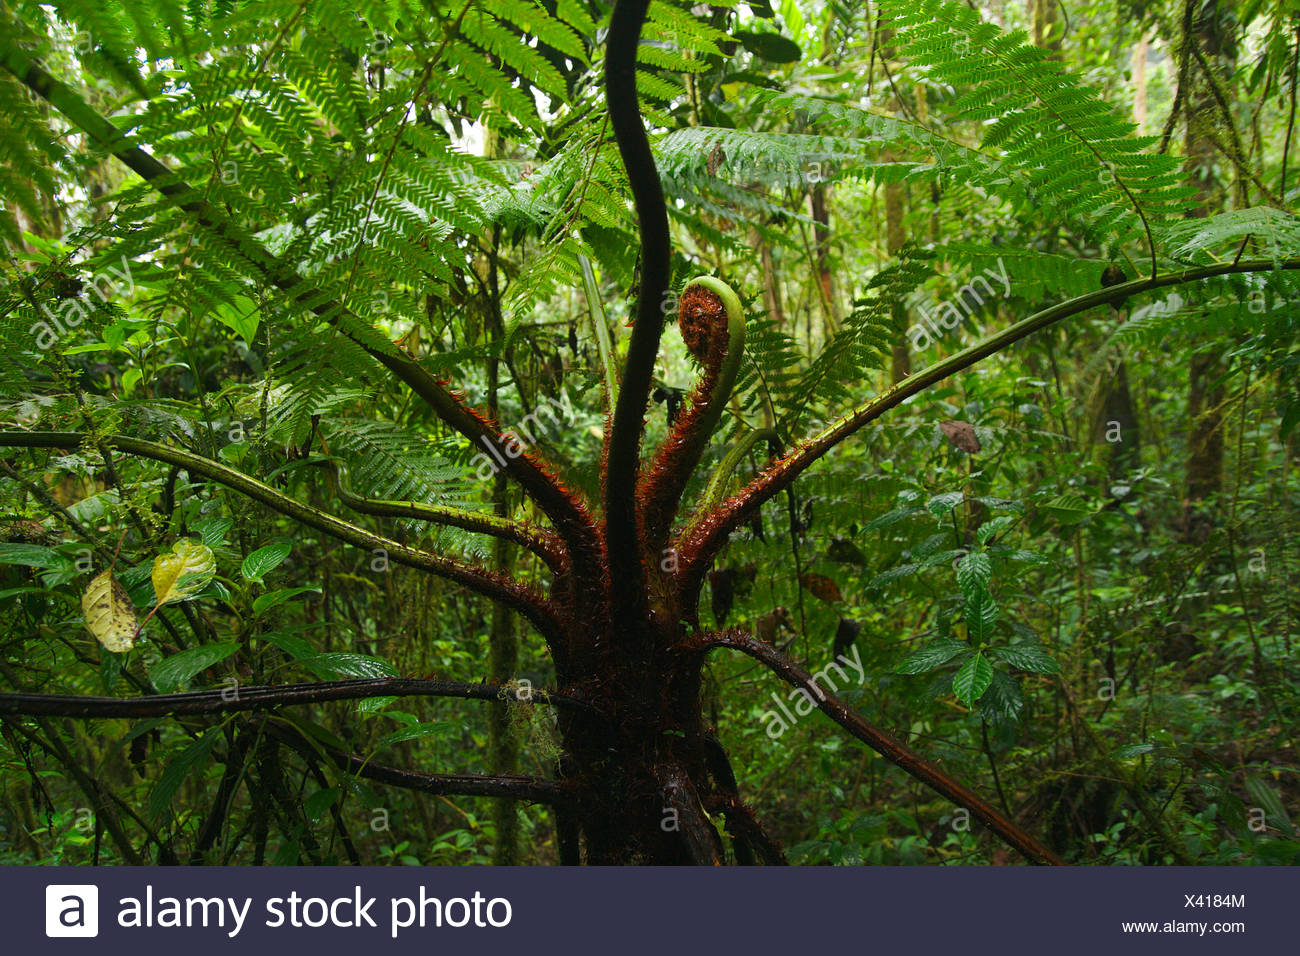 tree fern in cloud forest, Colombia, Parque Ucumari - Stock Image